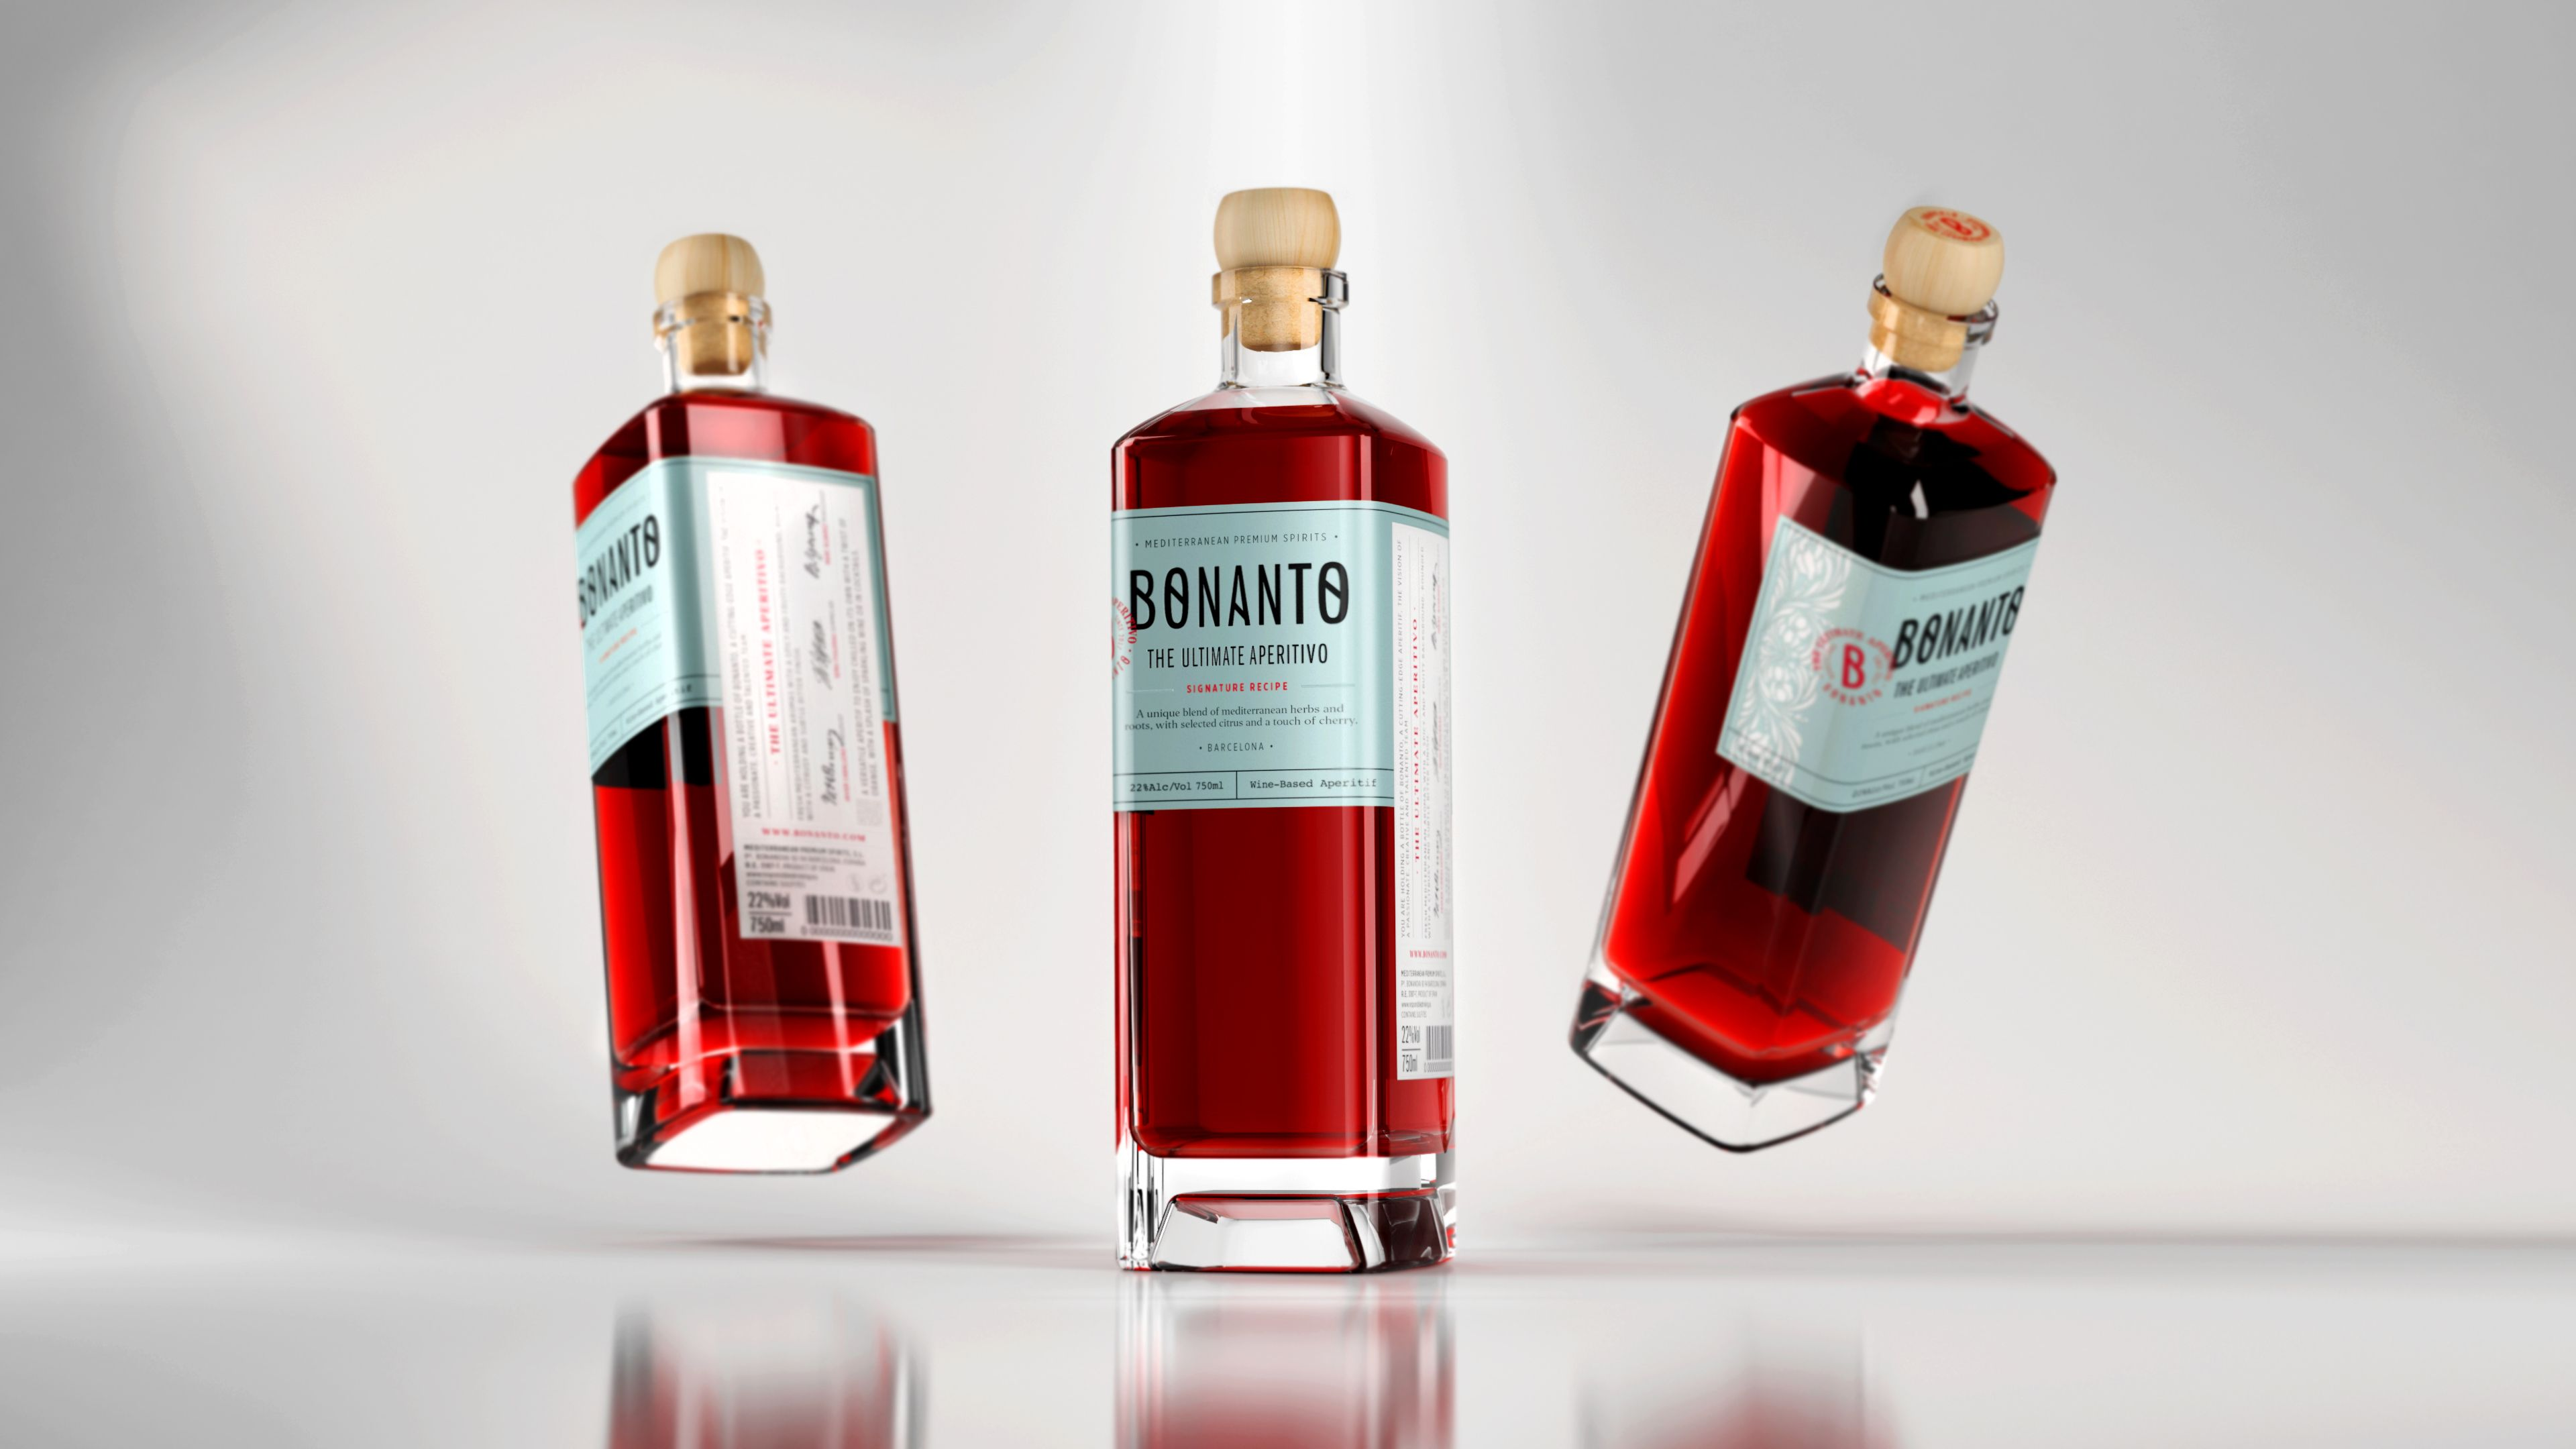 Bonanto Elegance And Authenticity Innovative With Personality Delicate Flavour Customized Glass Doblealto Bottle And A Wine Bottle Bottle Rose Wine Bottle